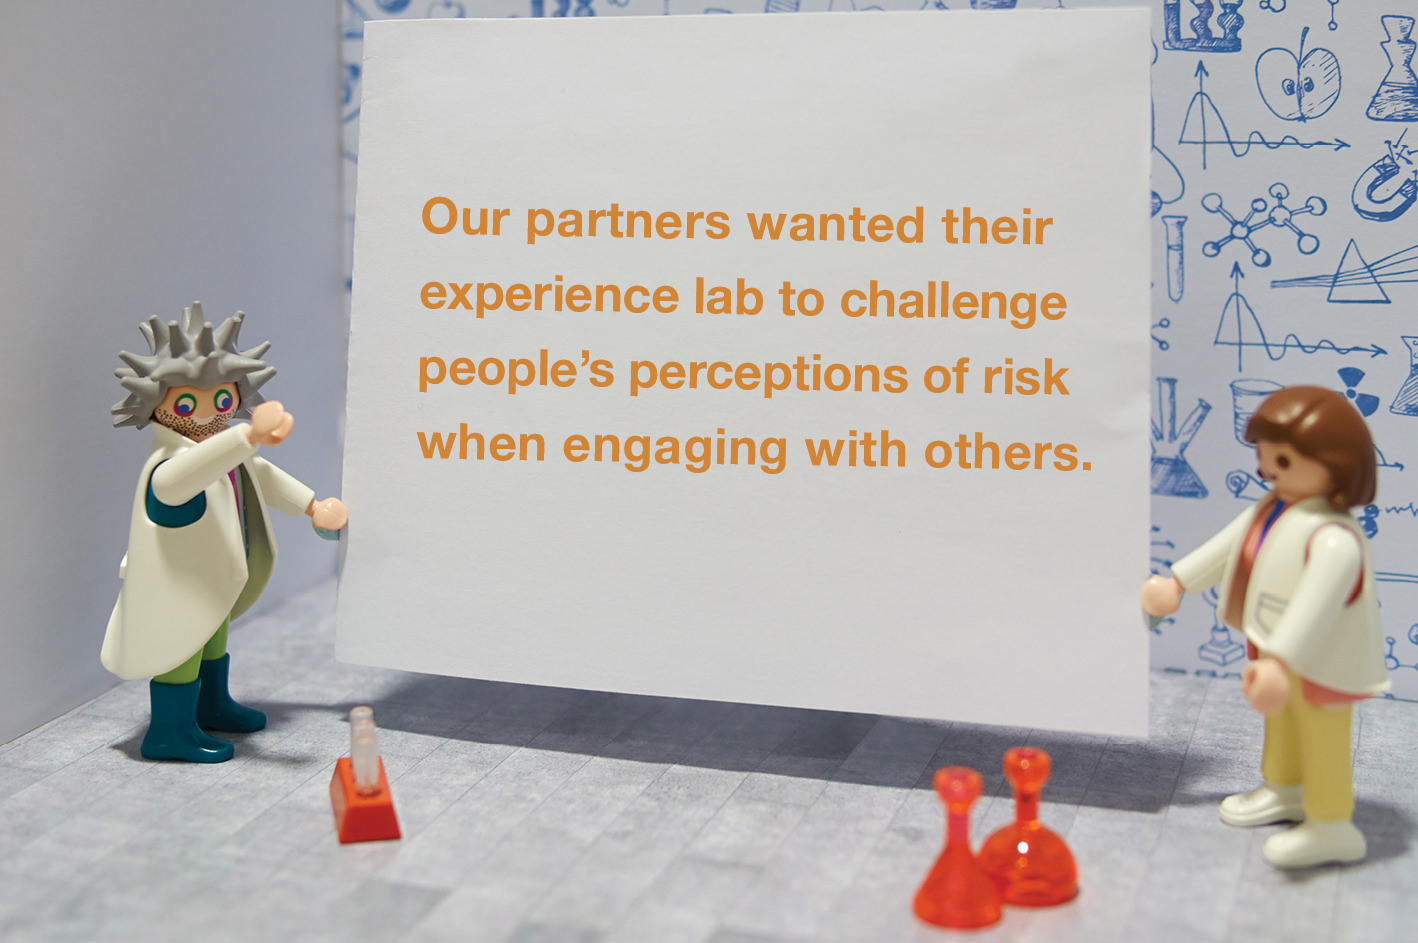 Our partners wanted their experience lab to challenge people's perceptions of risk when engaging with others.